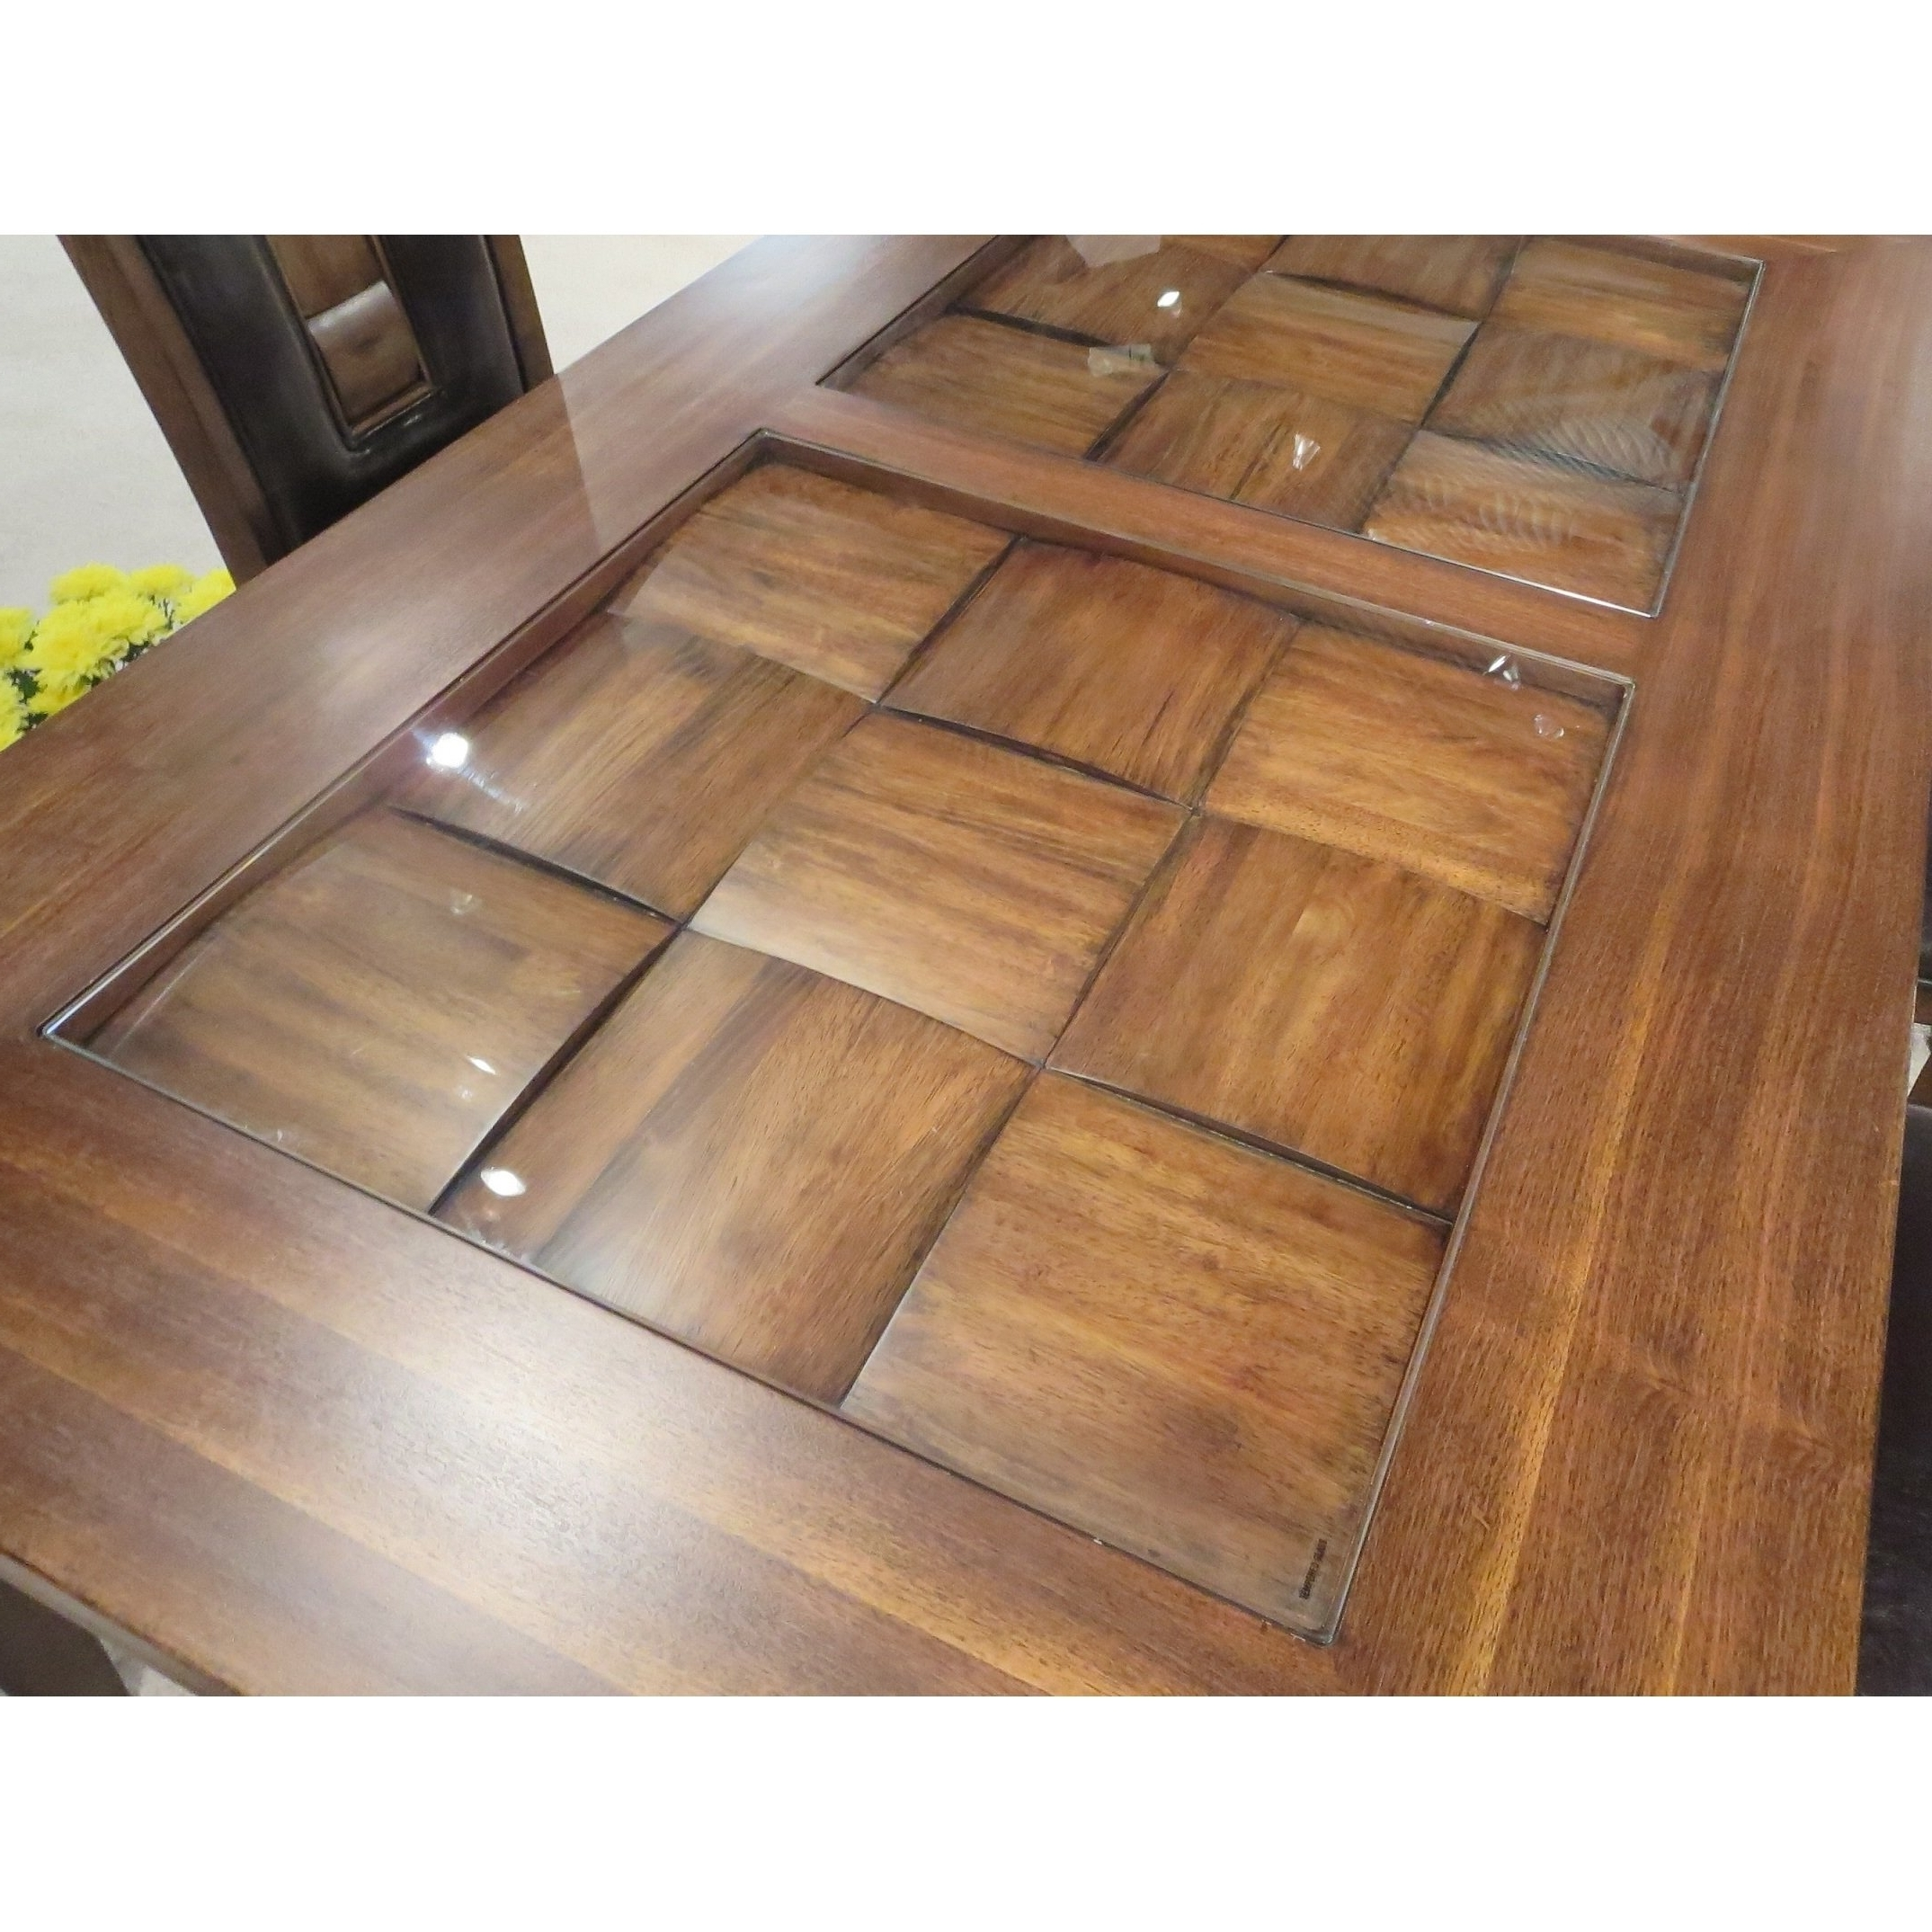 Shop Calais 7 Piece Parquet Finish Solid Wood Dining Table With 6 Intended For Most Popular Parquet 6 Piece Dining Sets (View 23 of 25)